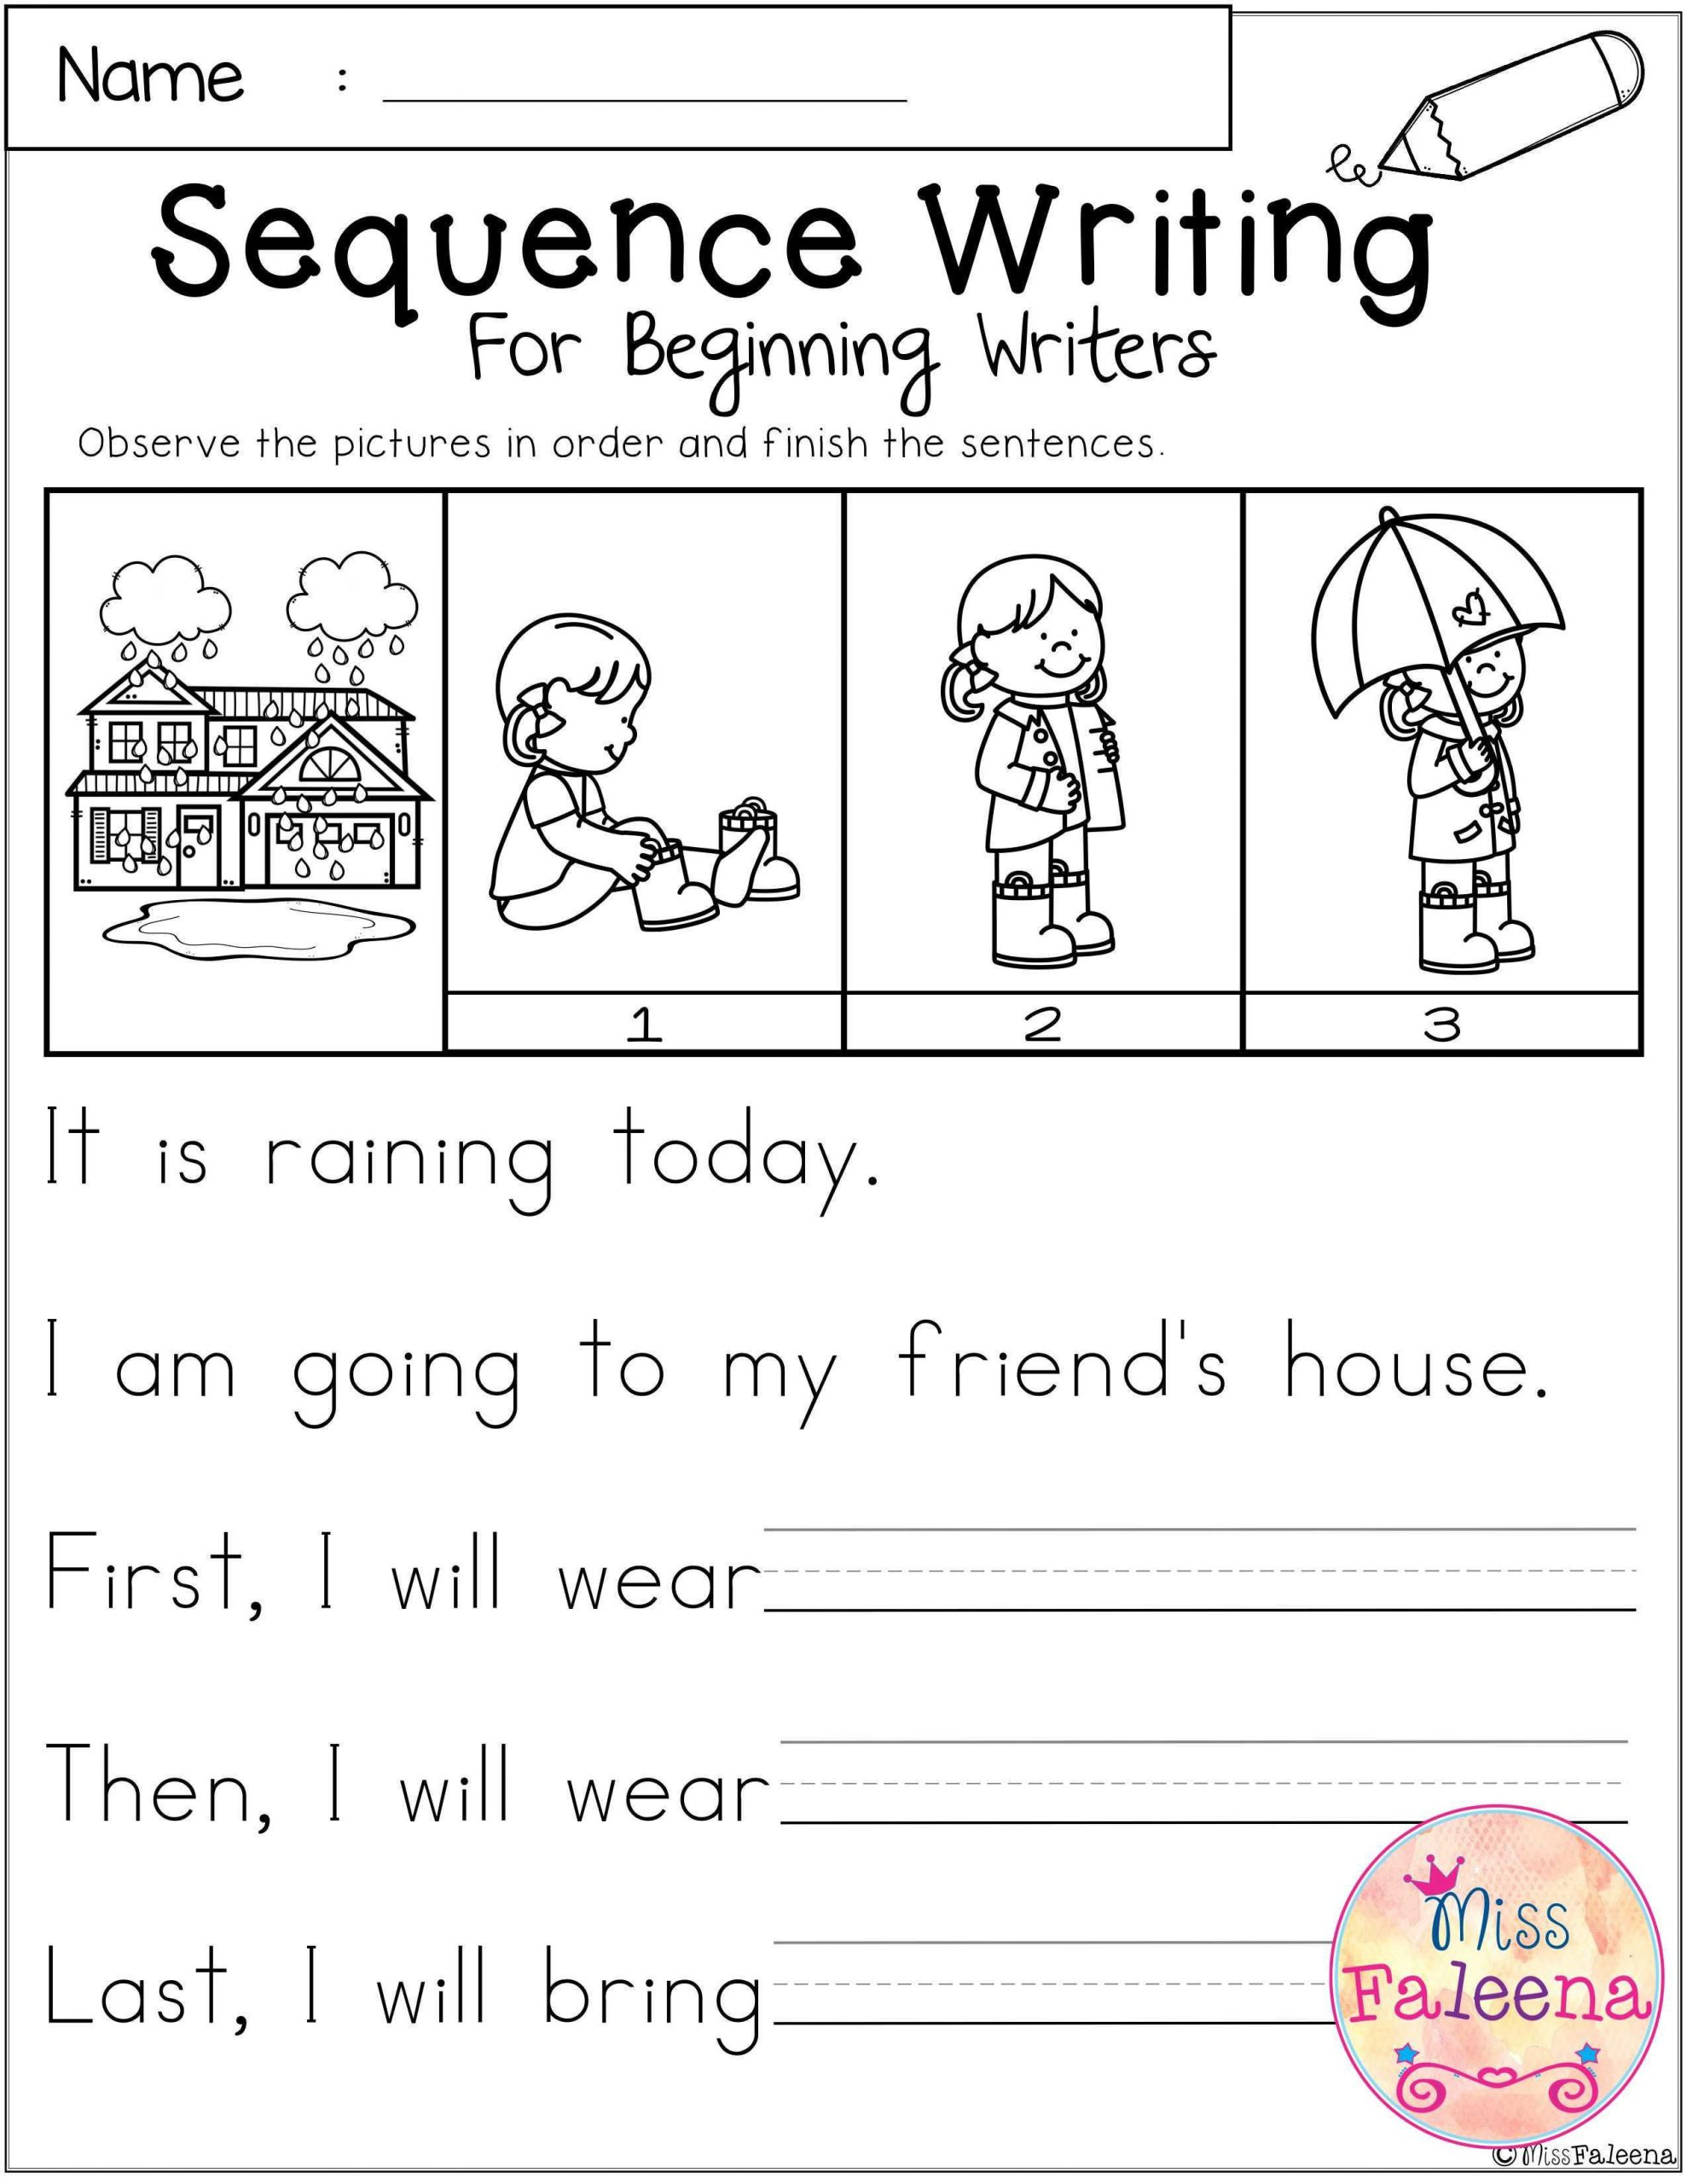 Sequence Worksheets for 1st Grade March Sequence Writing for Beginning Writers